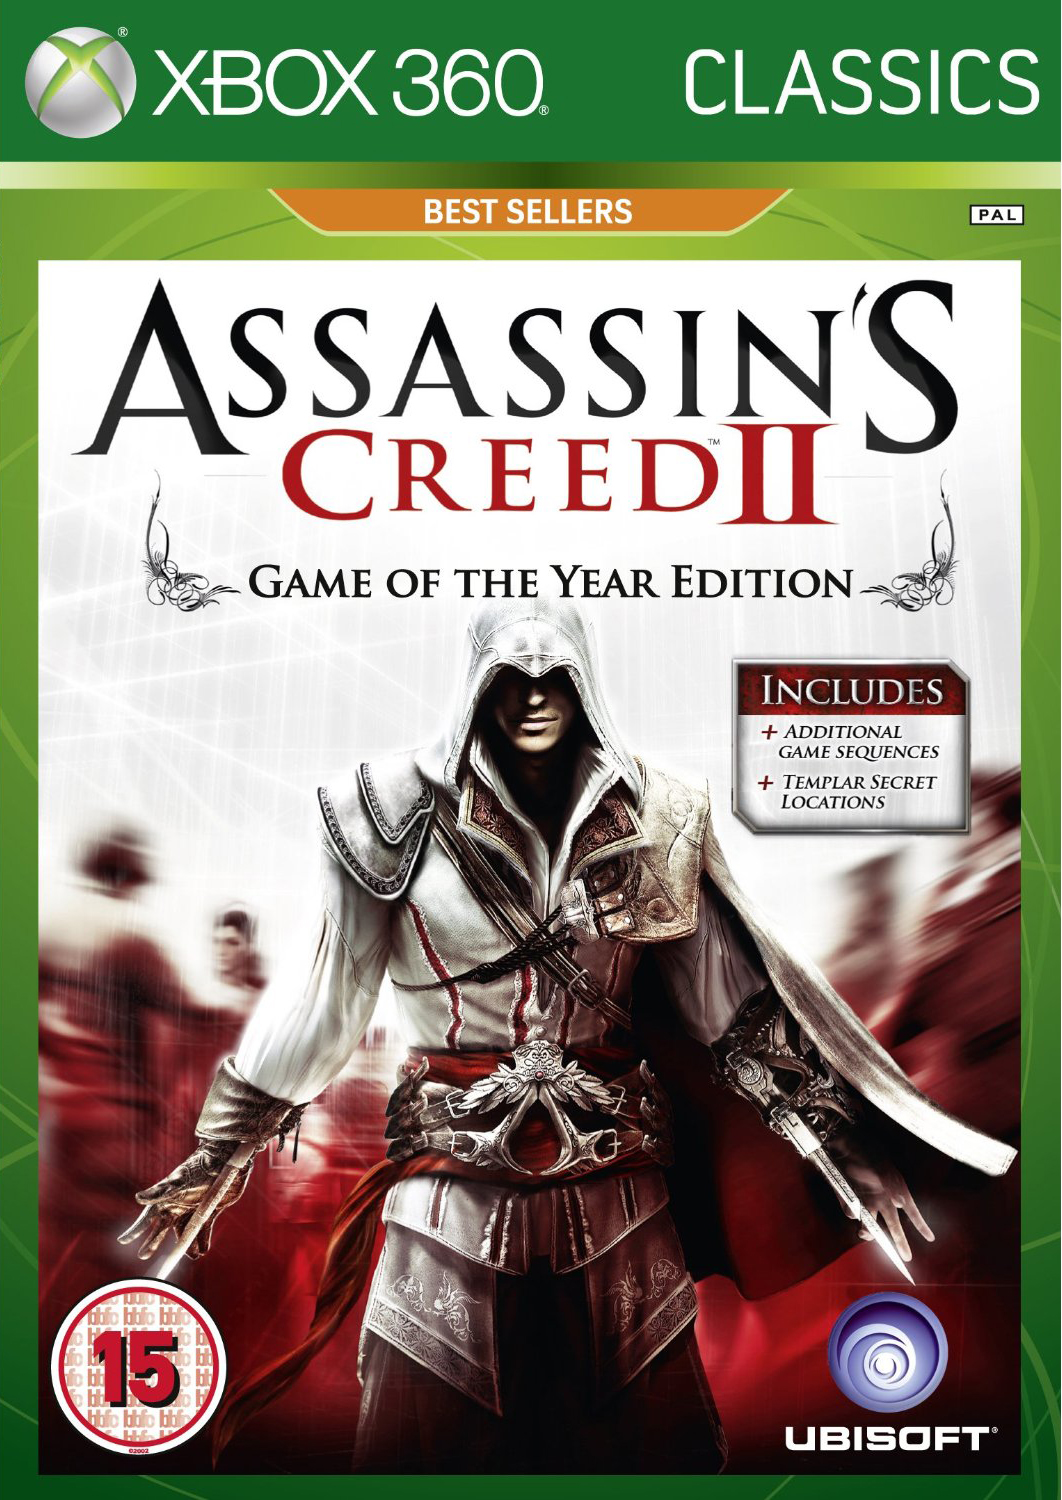 Assassins Creed II (2) Game of The Year Classics